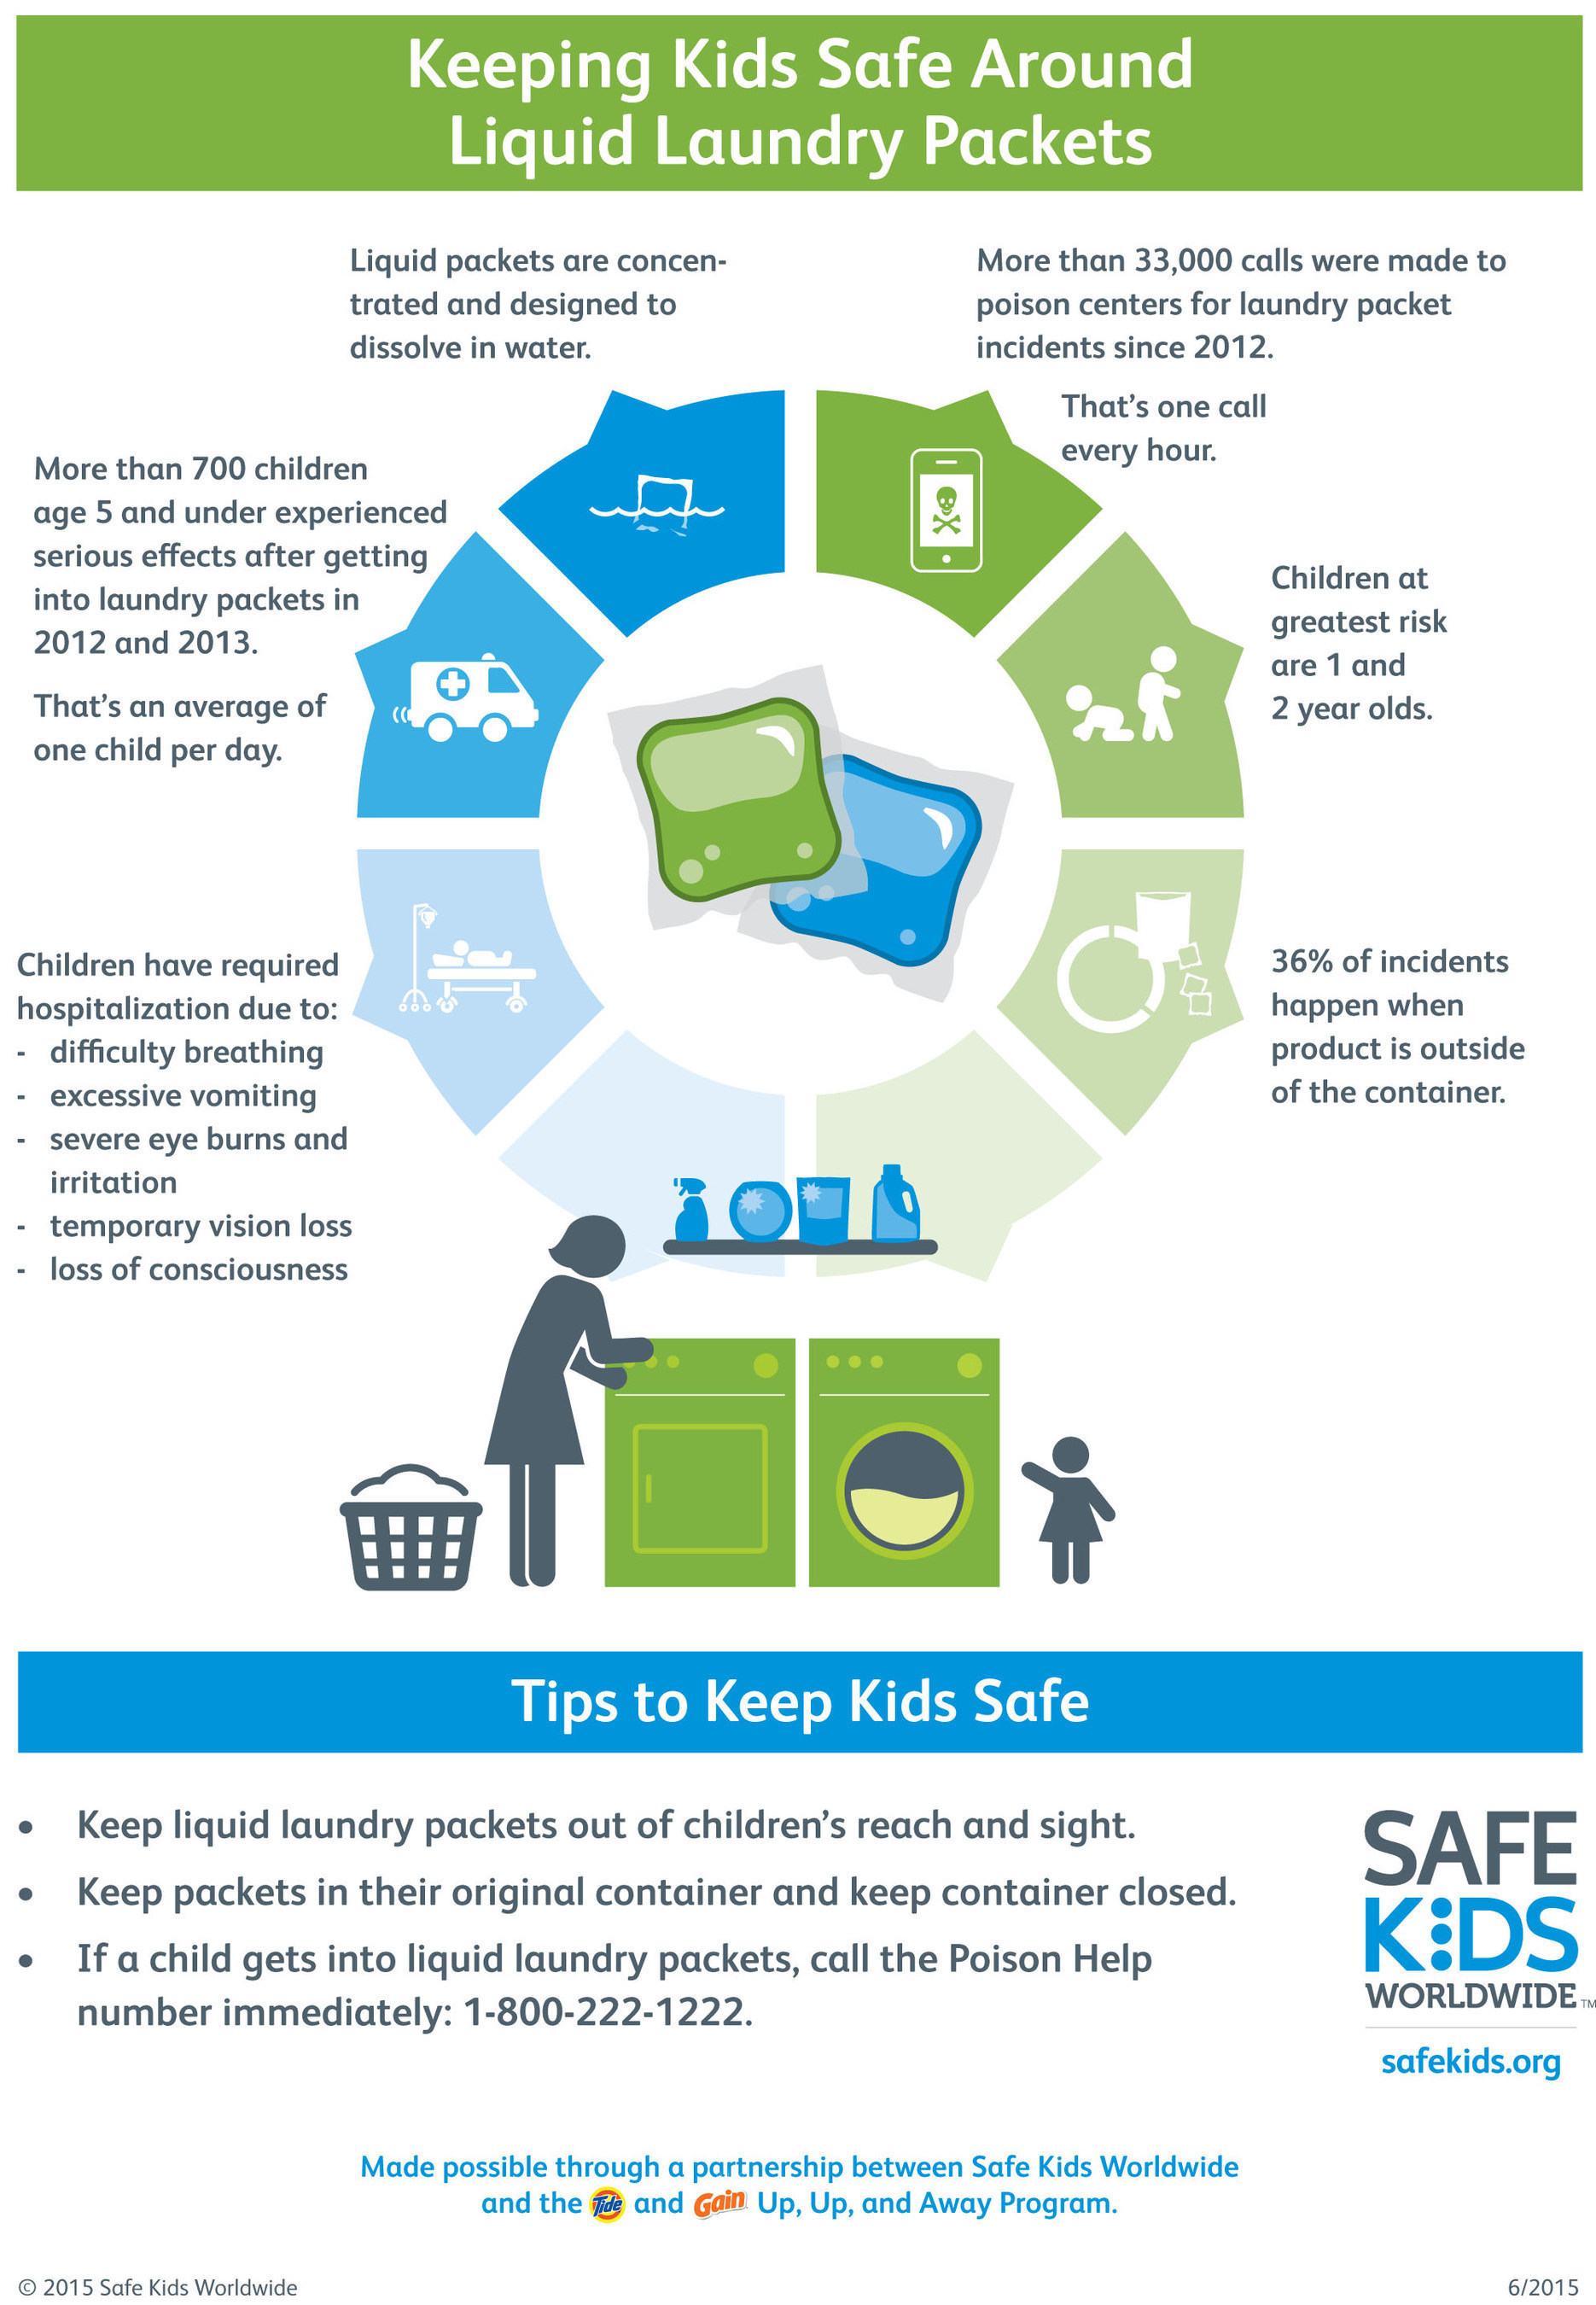 Liquid Laundry Packet Safety Infographic